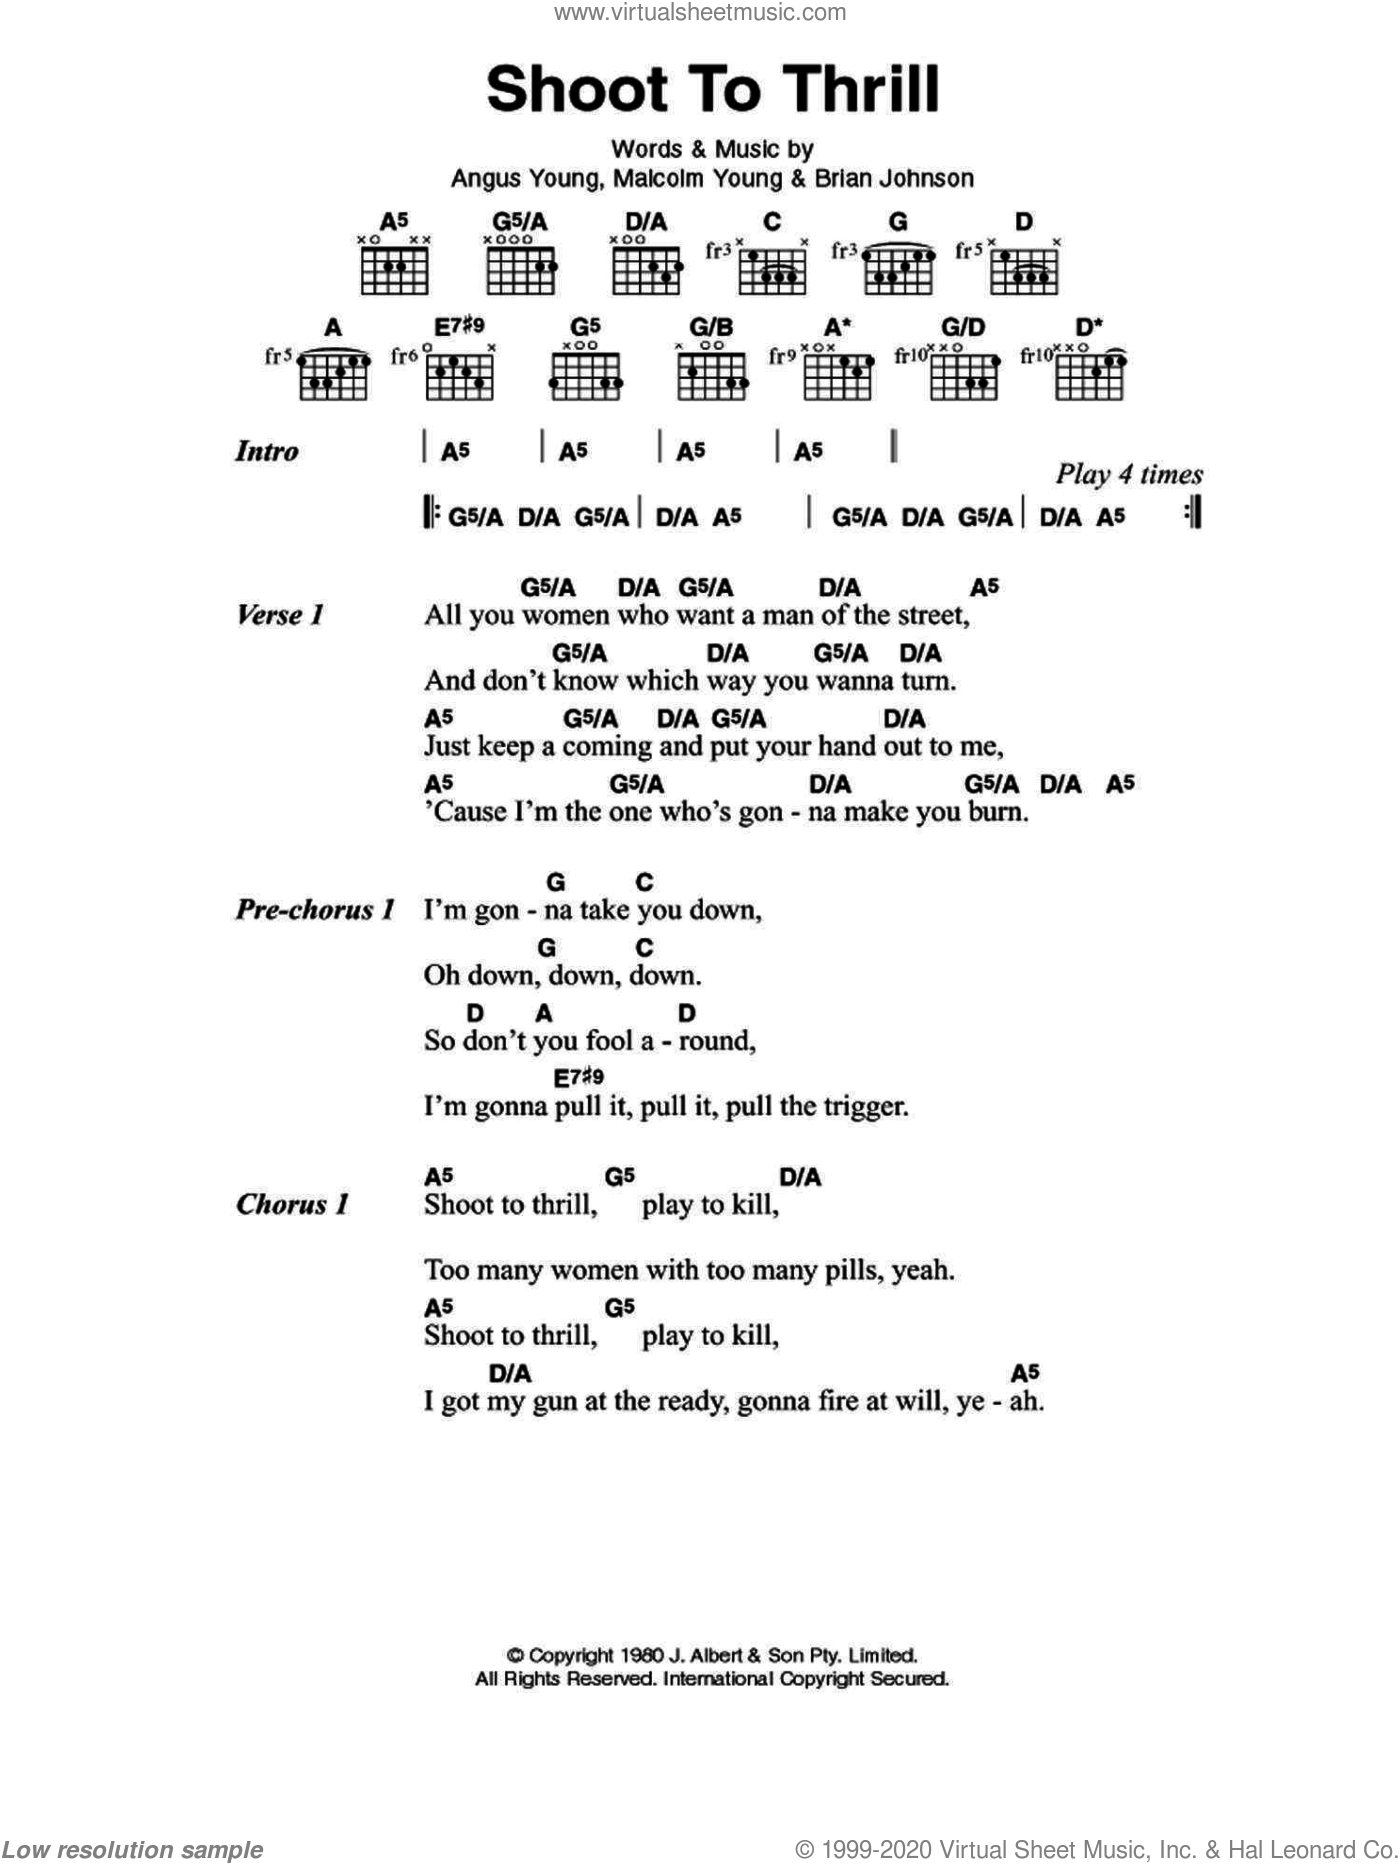 AC/DC - Shoot To Thrill sheet music for guitar (chords) [PDF]